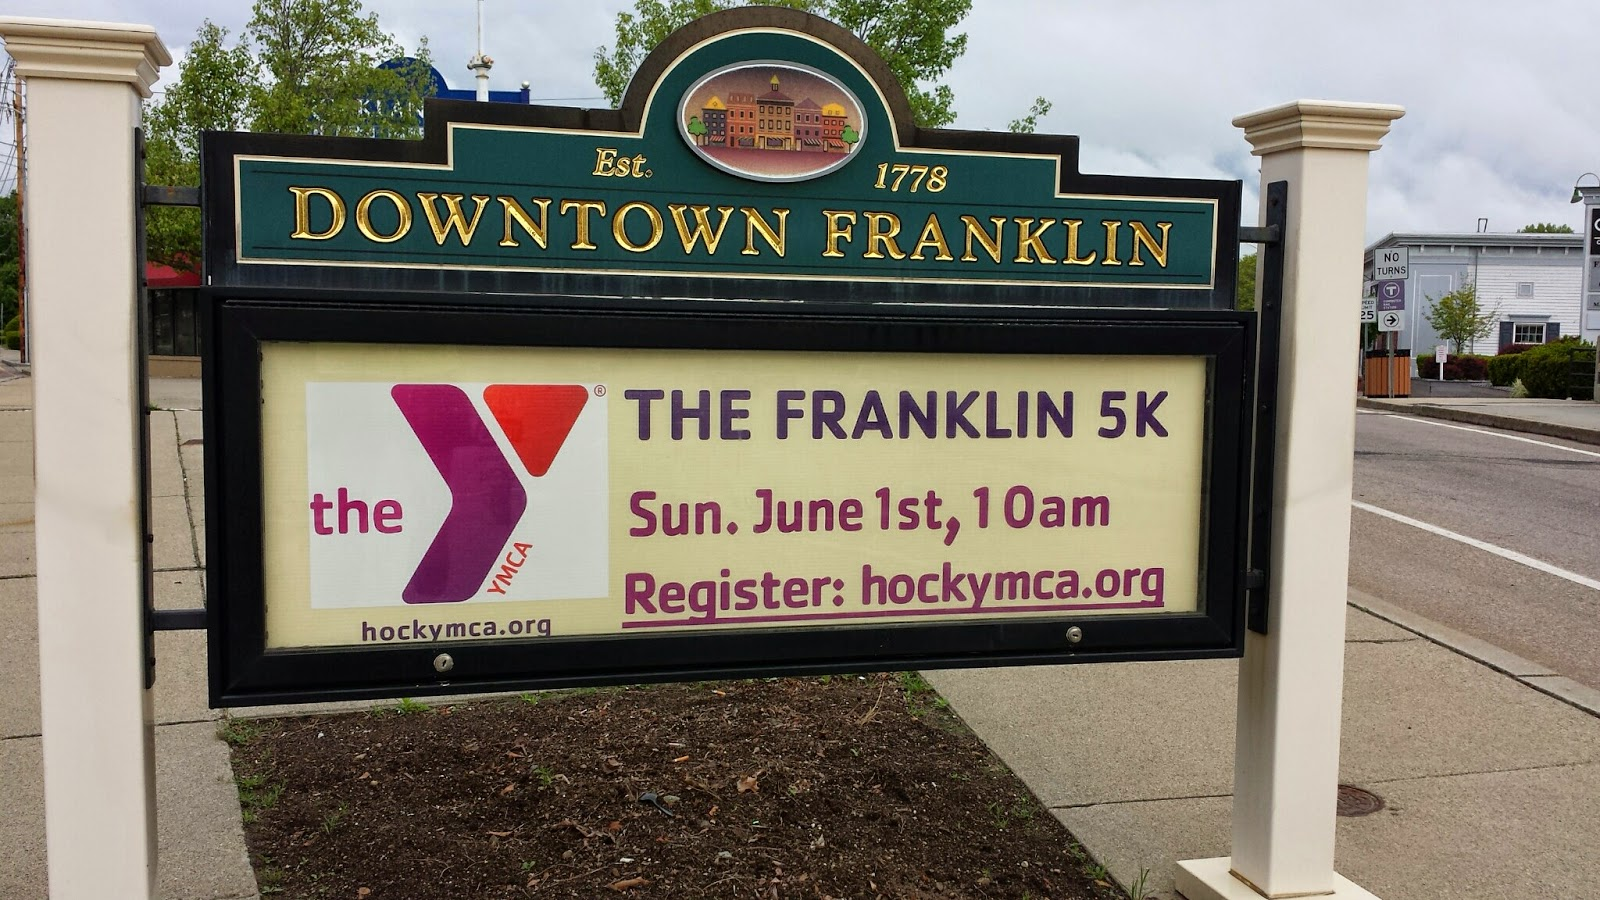 The Franklin 5K - Jun 1